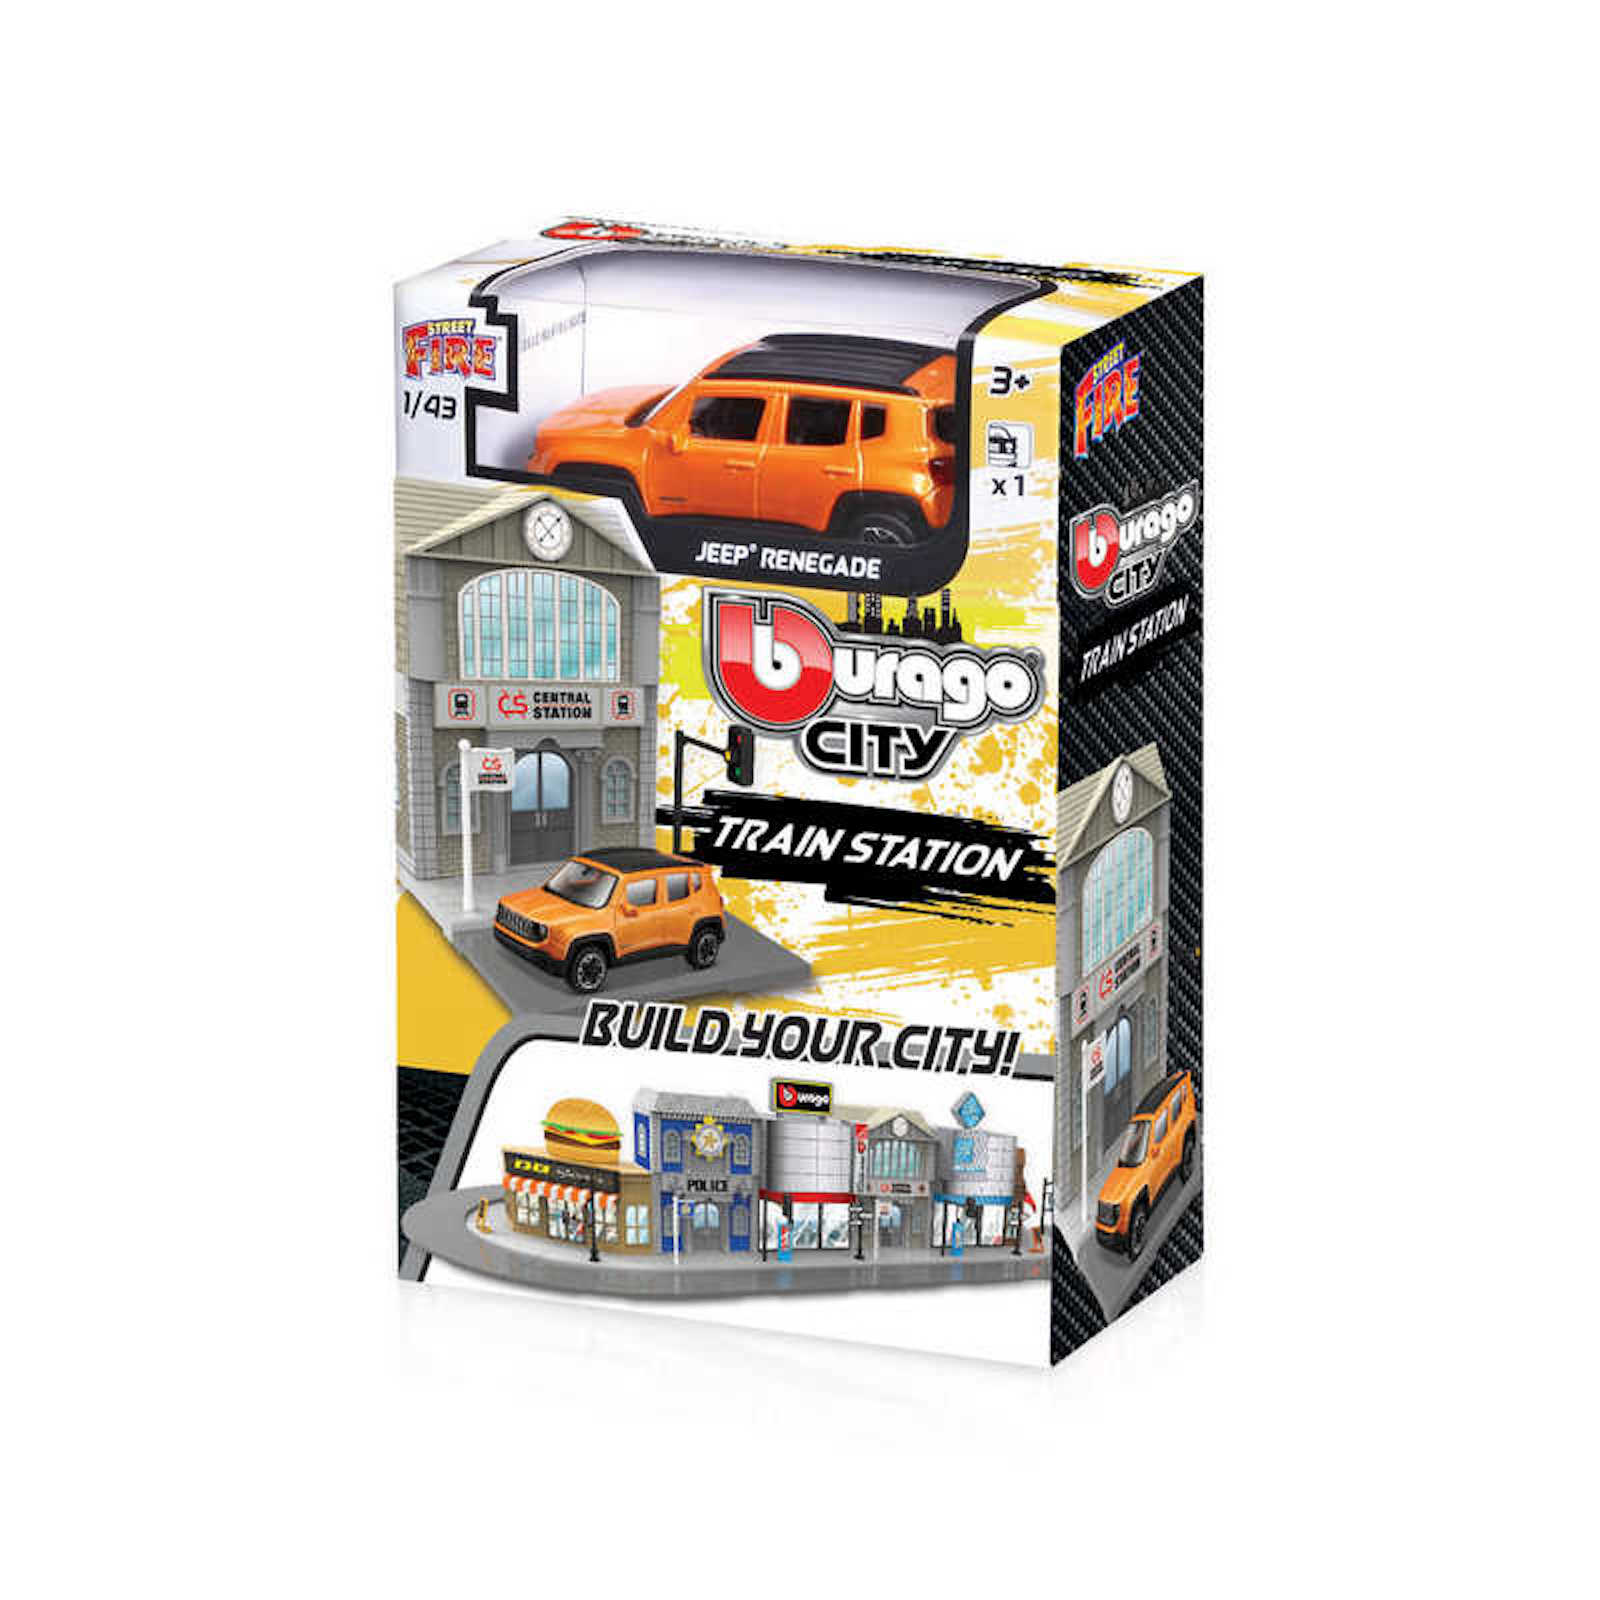 Build your City Train Station Jeep Renegade Bburago Street Fire 1:43 Scale Model Toy Childs Kids Dads Birthday Present Gift